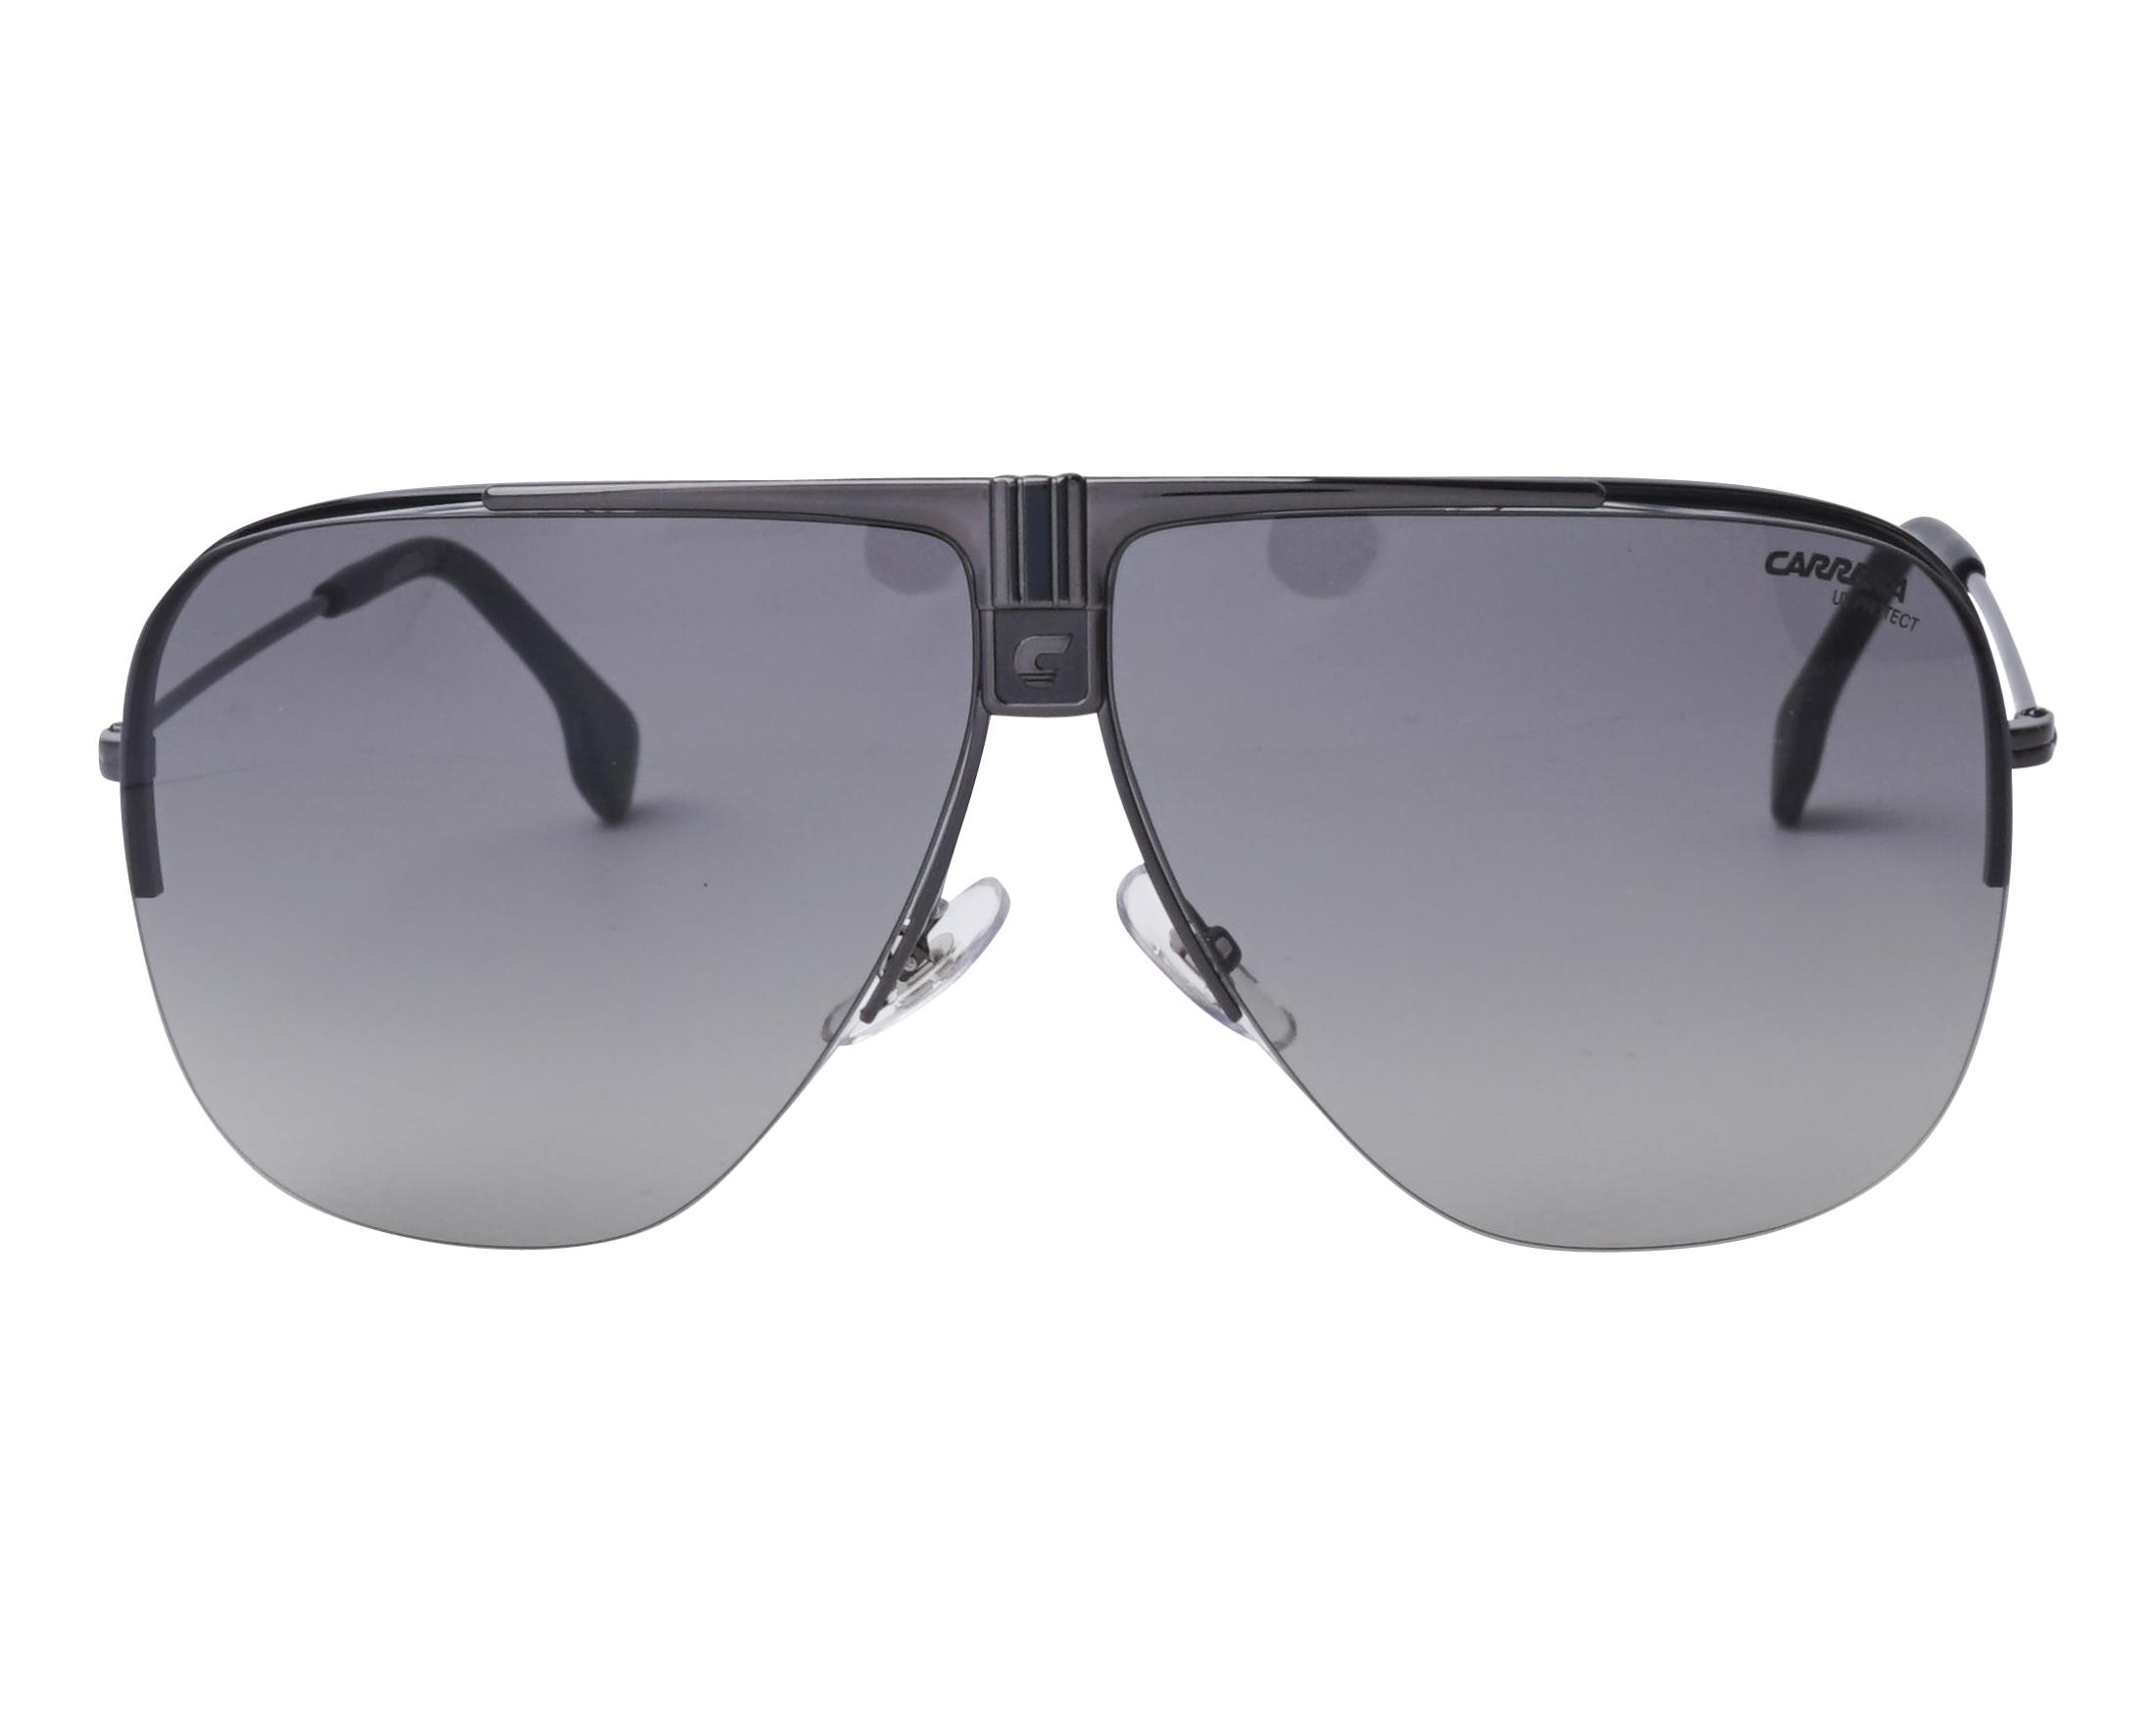 c0619f652f Sunglasses Carrera 1013-S V81PR 64-9 Ruthenium front view